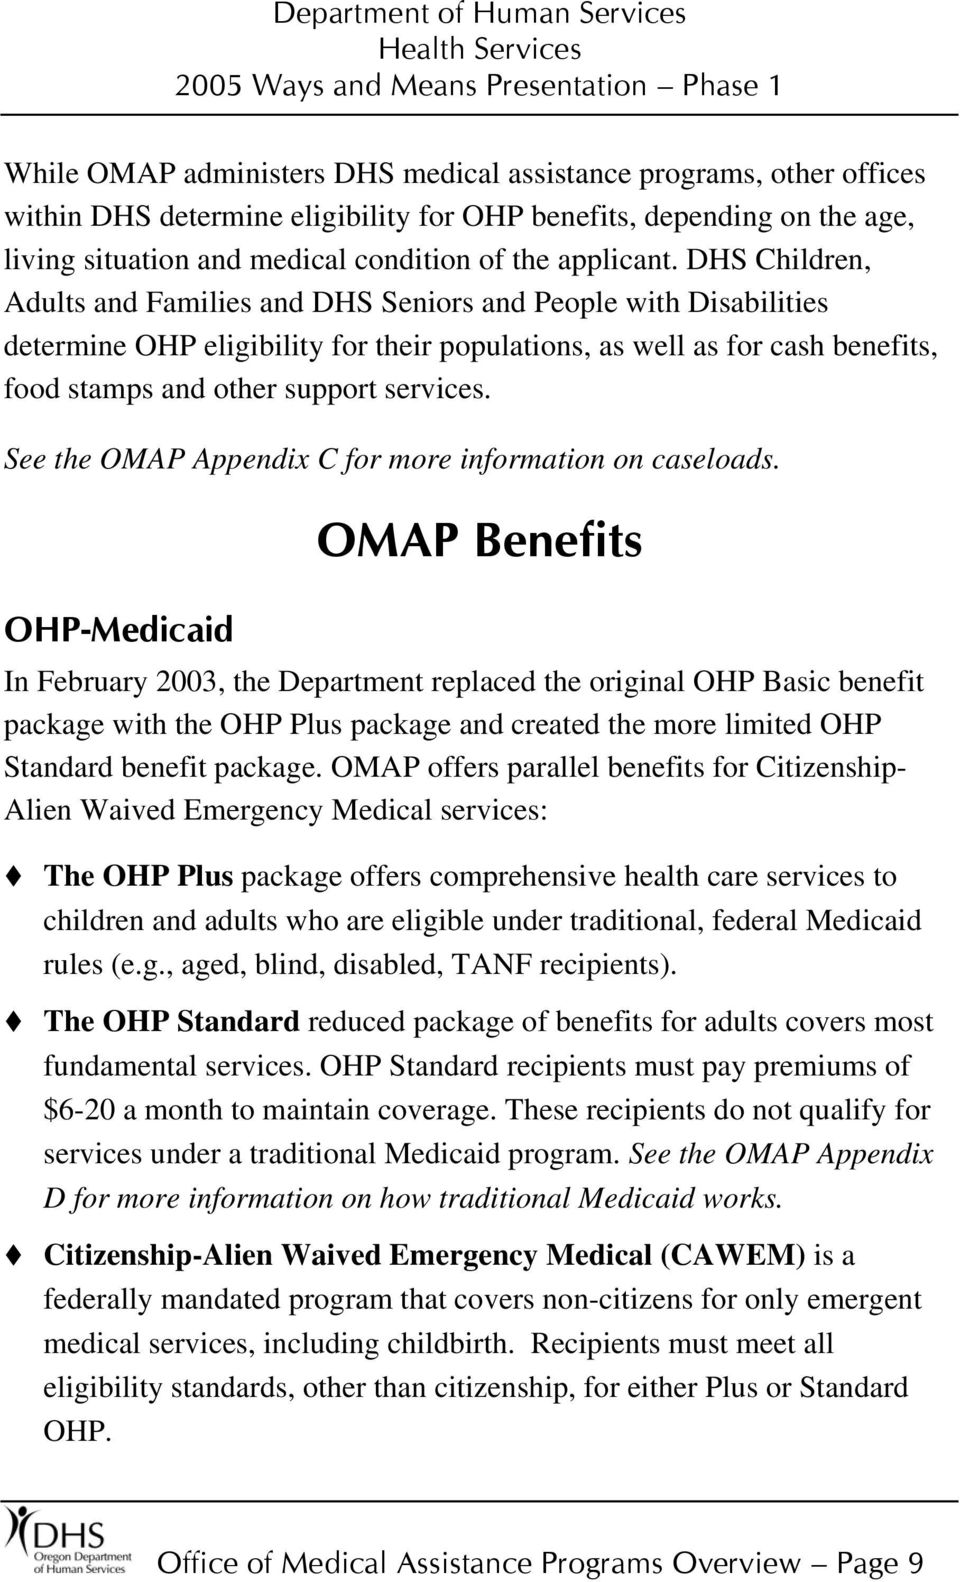 See the OMAP Appendix C for more information on caseloads.